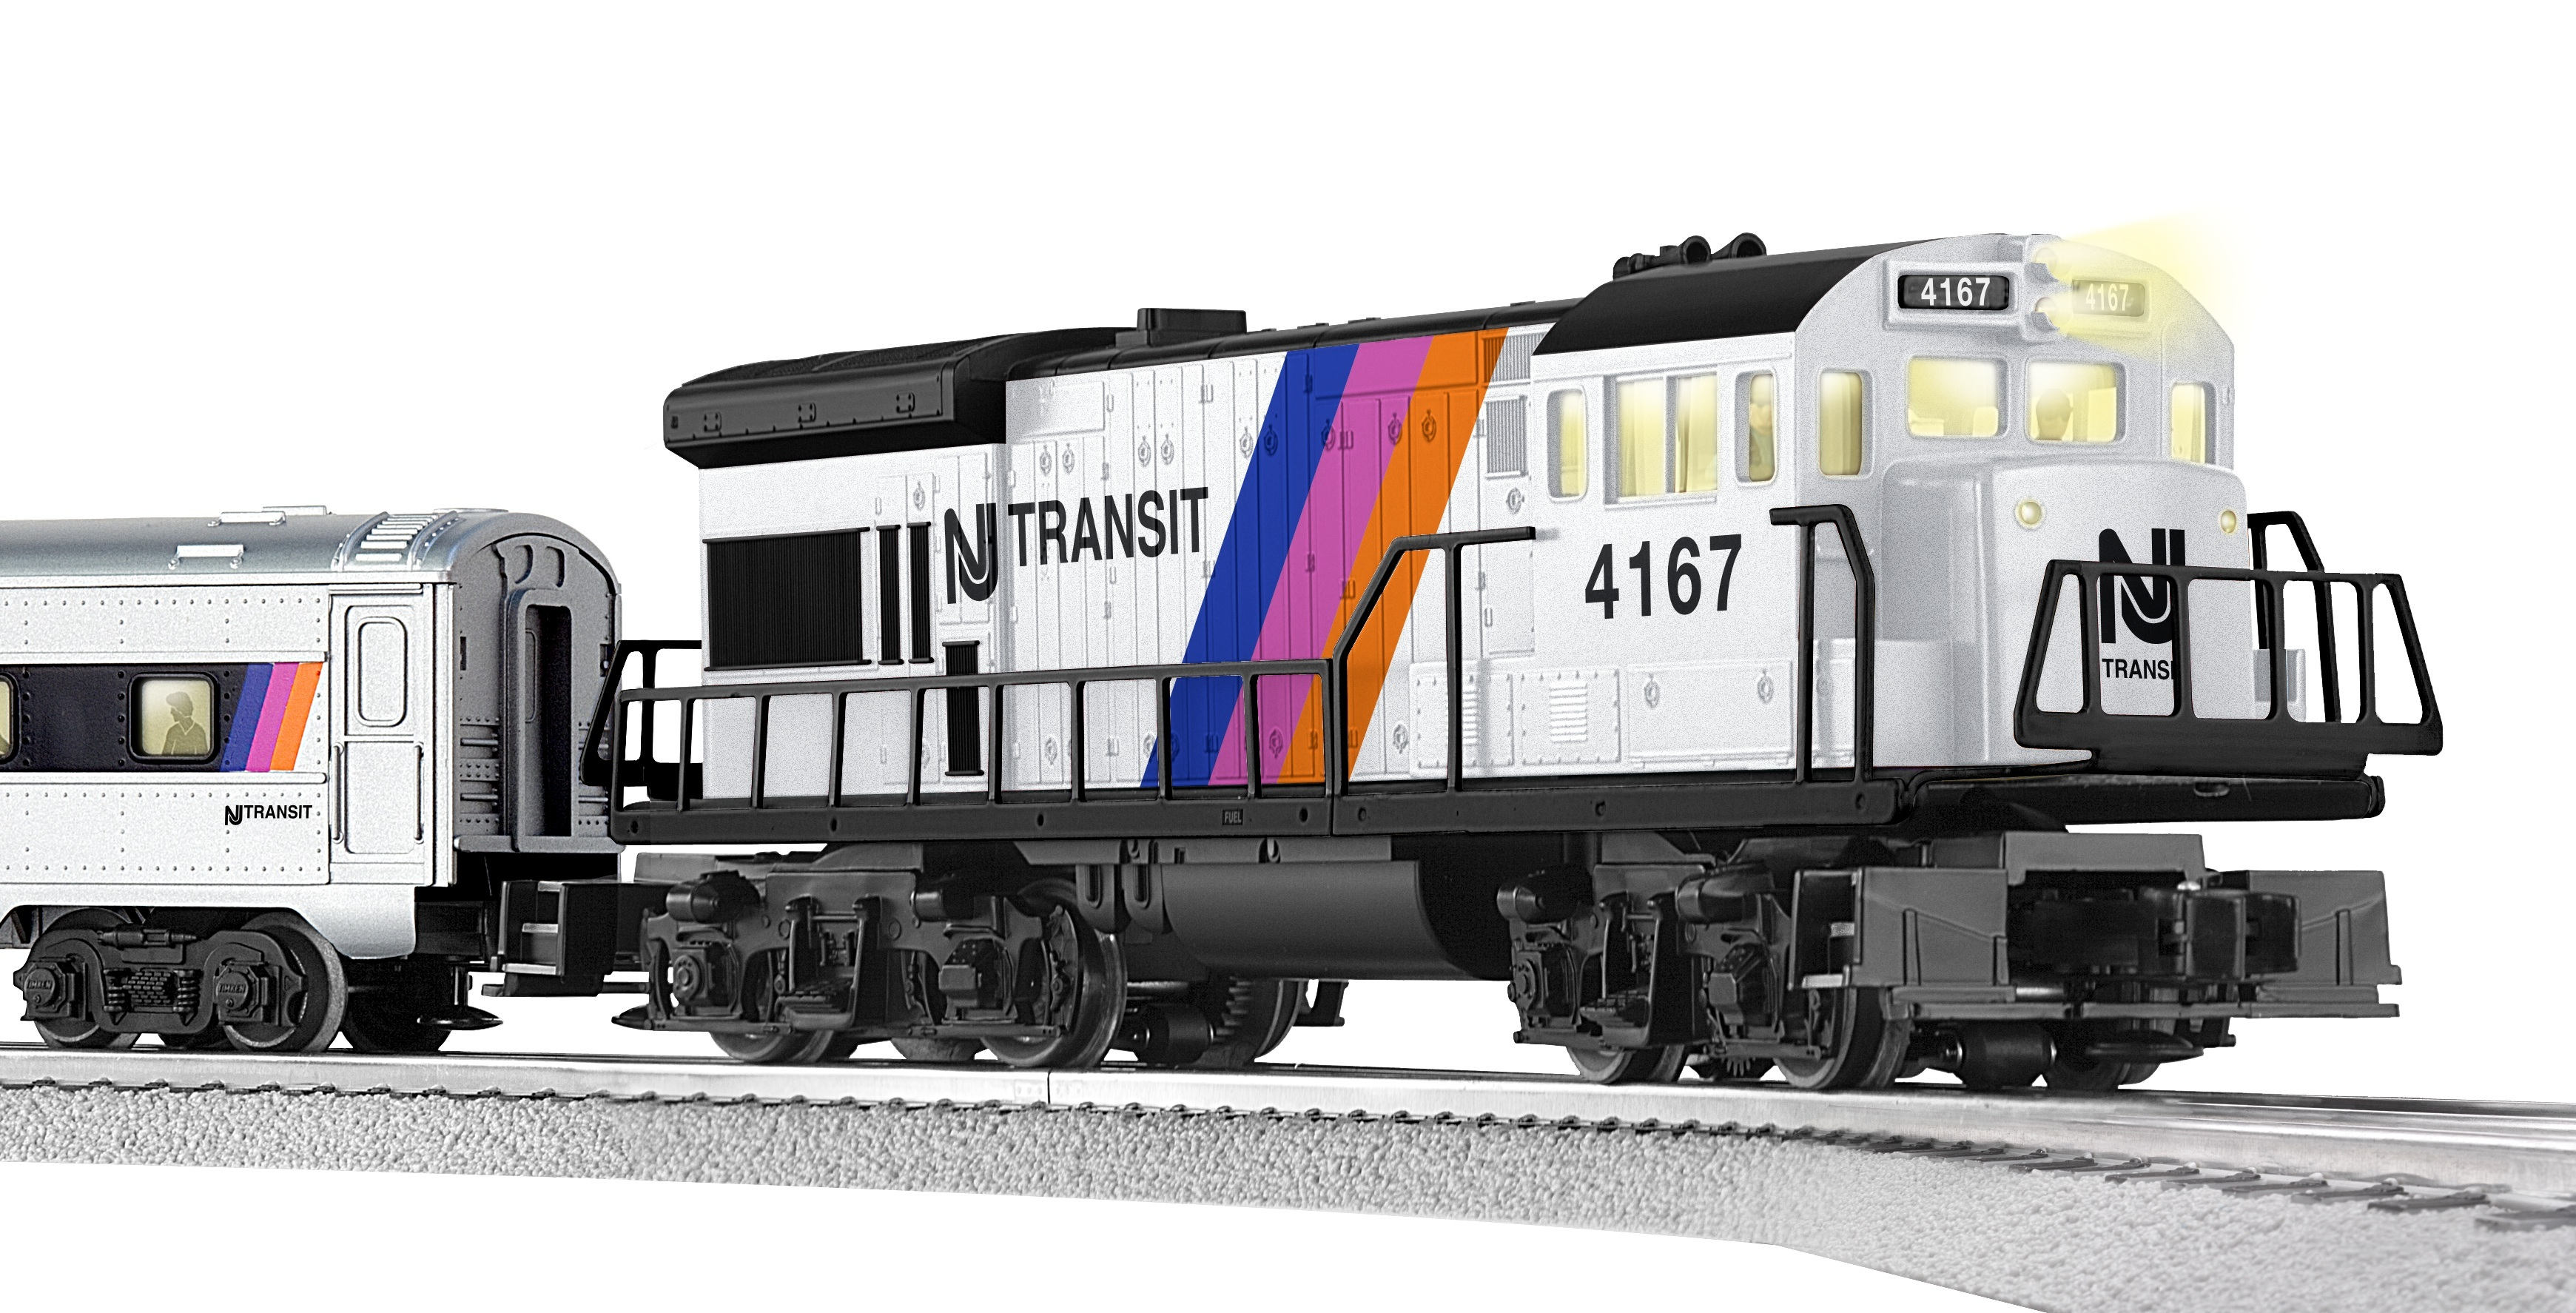 respond as well Limited Edition Historic Series Ready To Run Nj Transit Train Set U36b 4167 6 30169 as well Waeco Cfx 50 as well Cars With 7 Seats besides H5599 Rocker Knife. on transit power tips